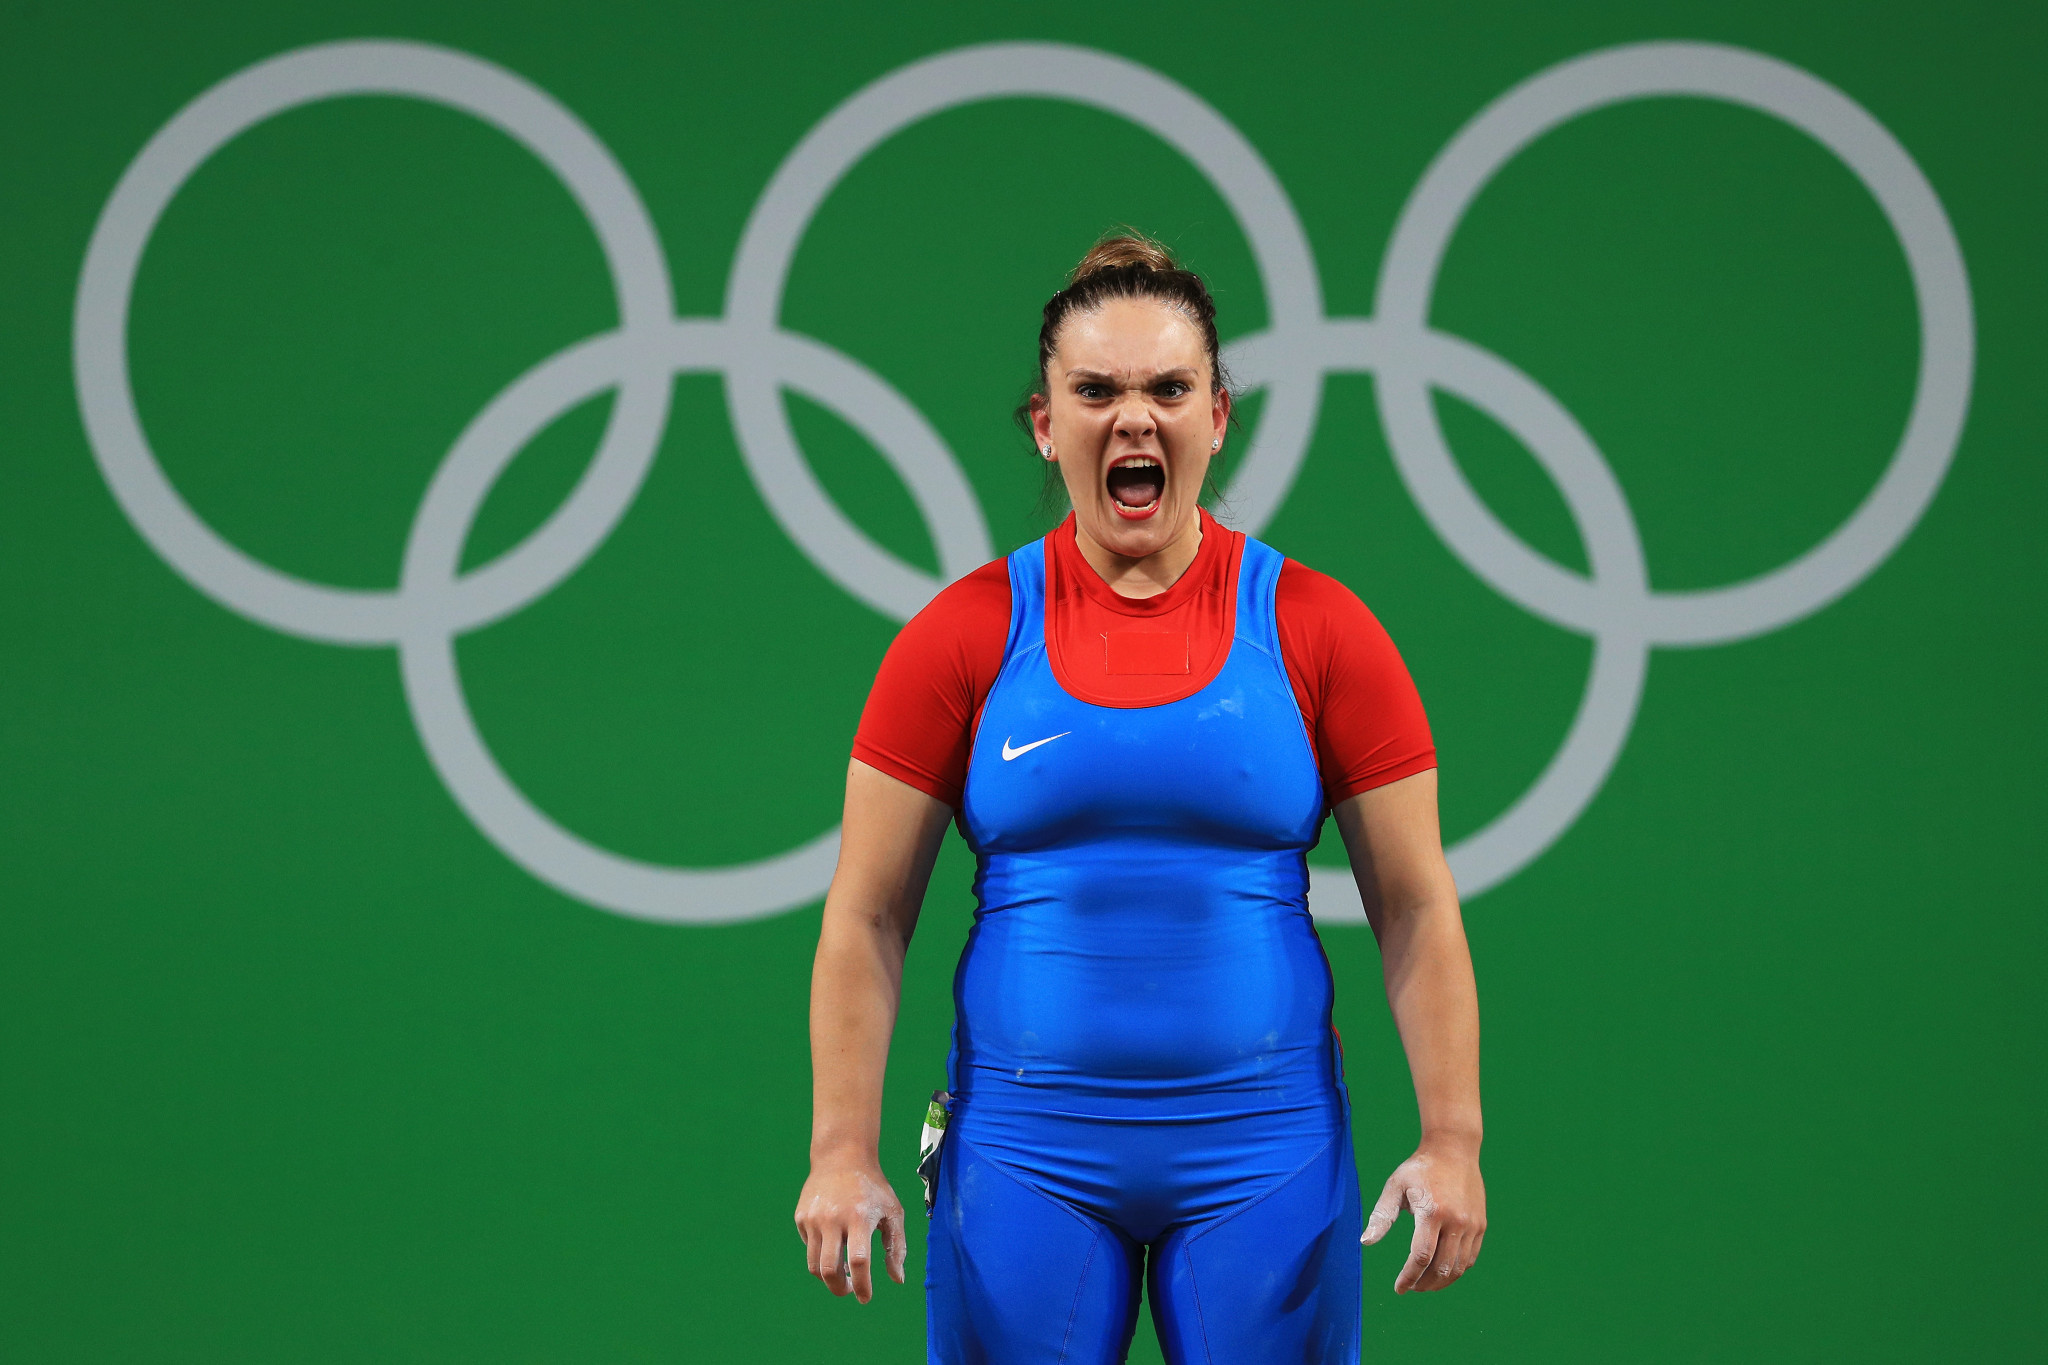 Chile's weightlifting medal contender out of Tokyo 2020 with shoulder injury